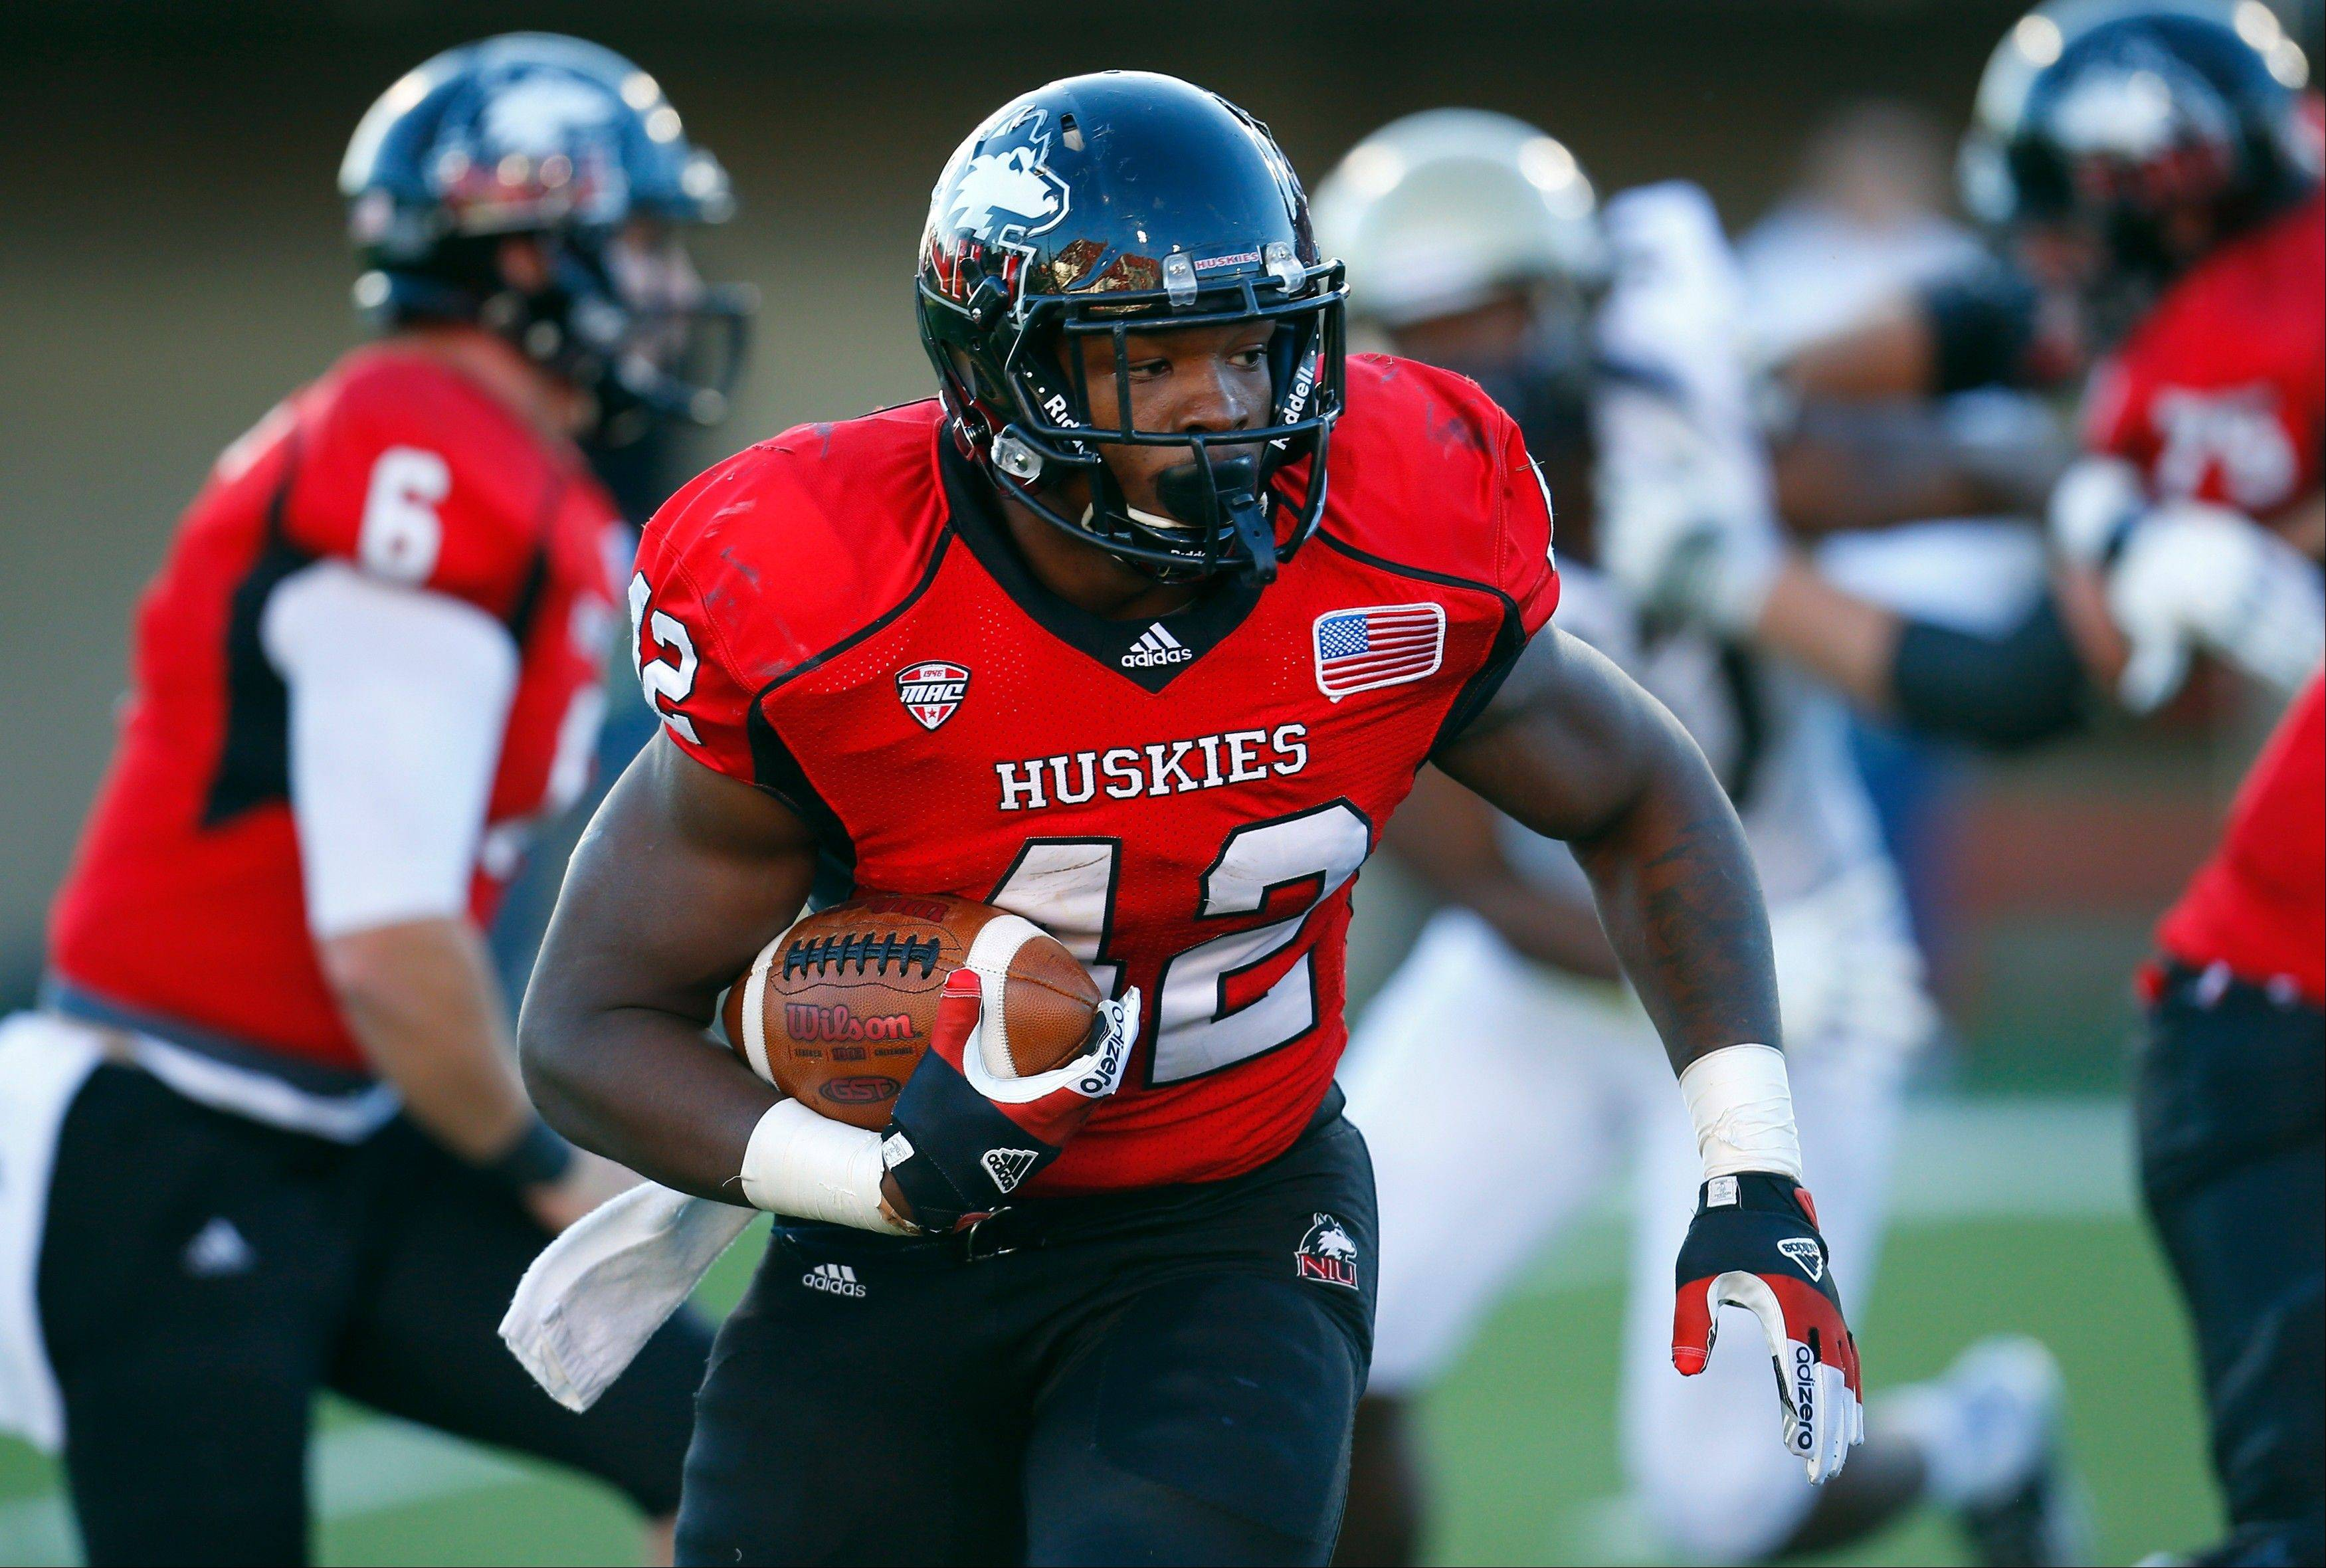 Northern Illinois running back Cameron Stingily runs the ball against Akron during Saturday�s first half in DeKalb.